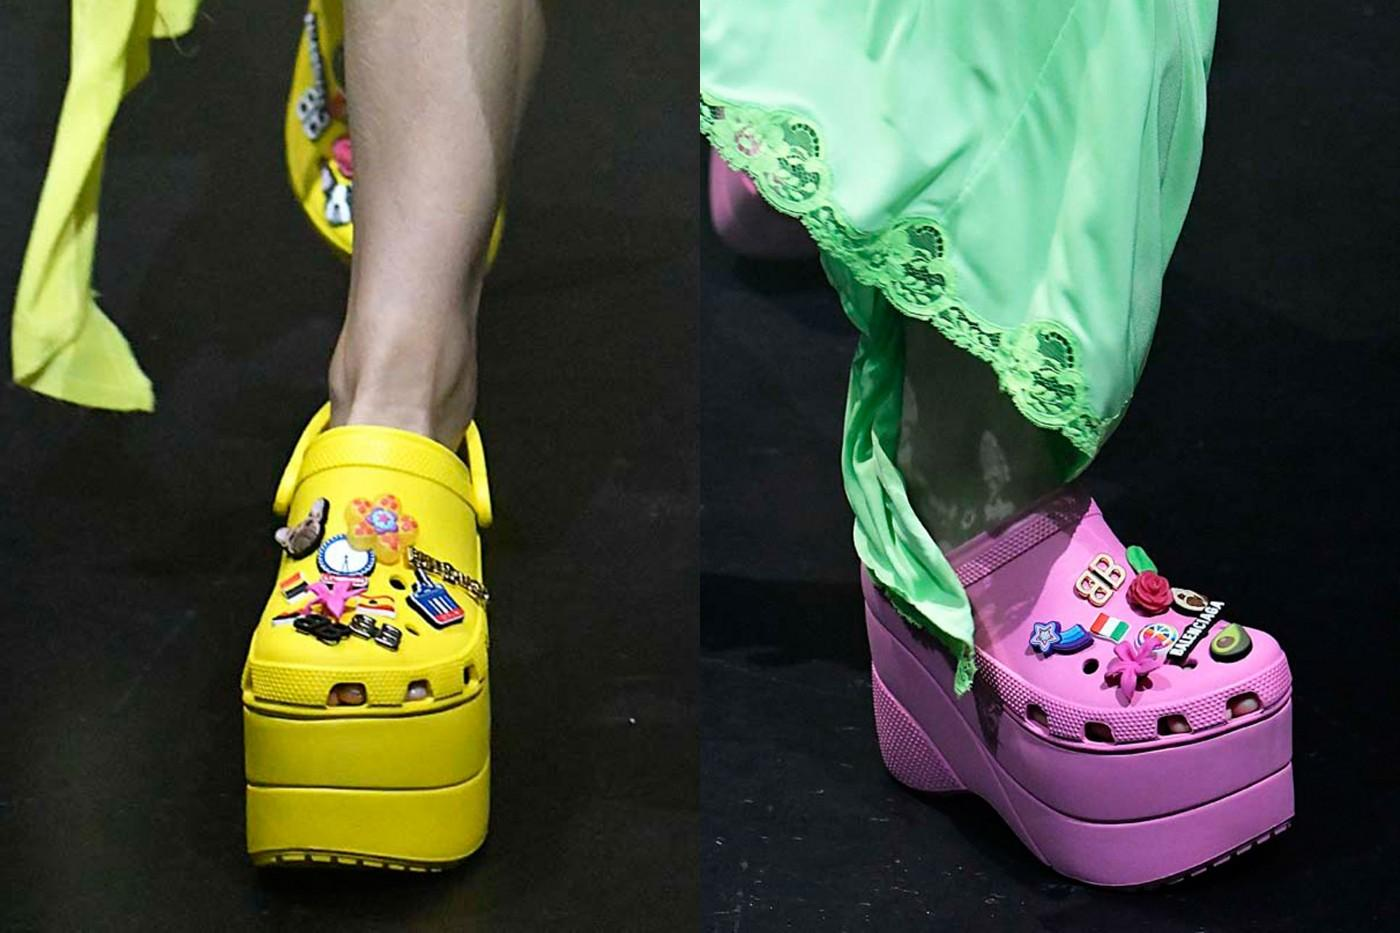 d736b989db2 OMG Those Balenciaga Platform Crocs Sold Out In Less Than a Day on Pre-Order